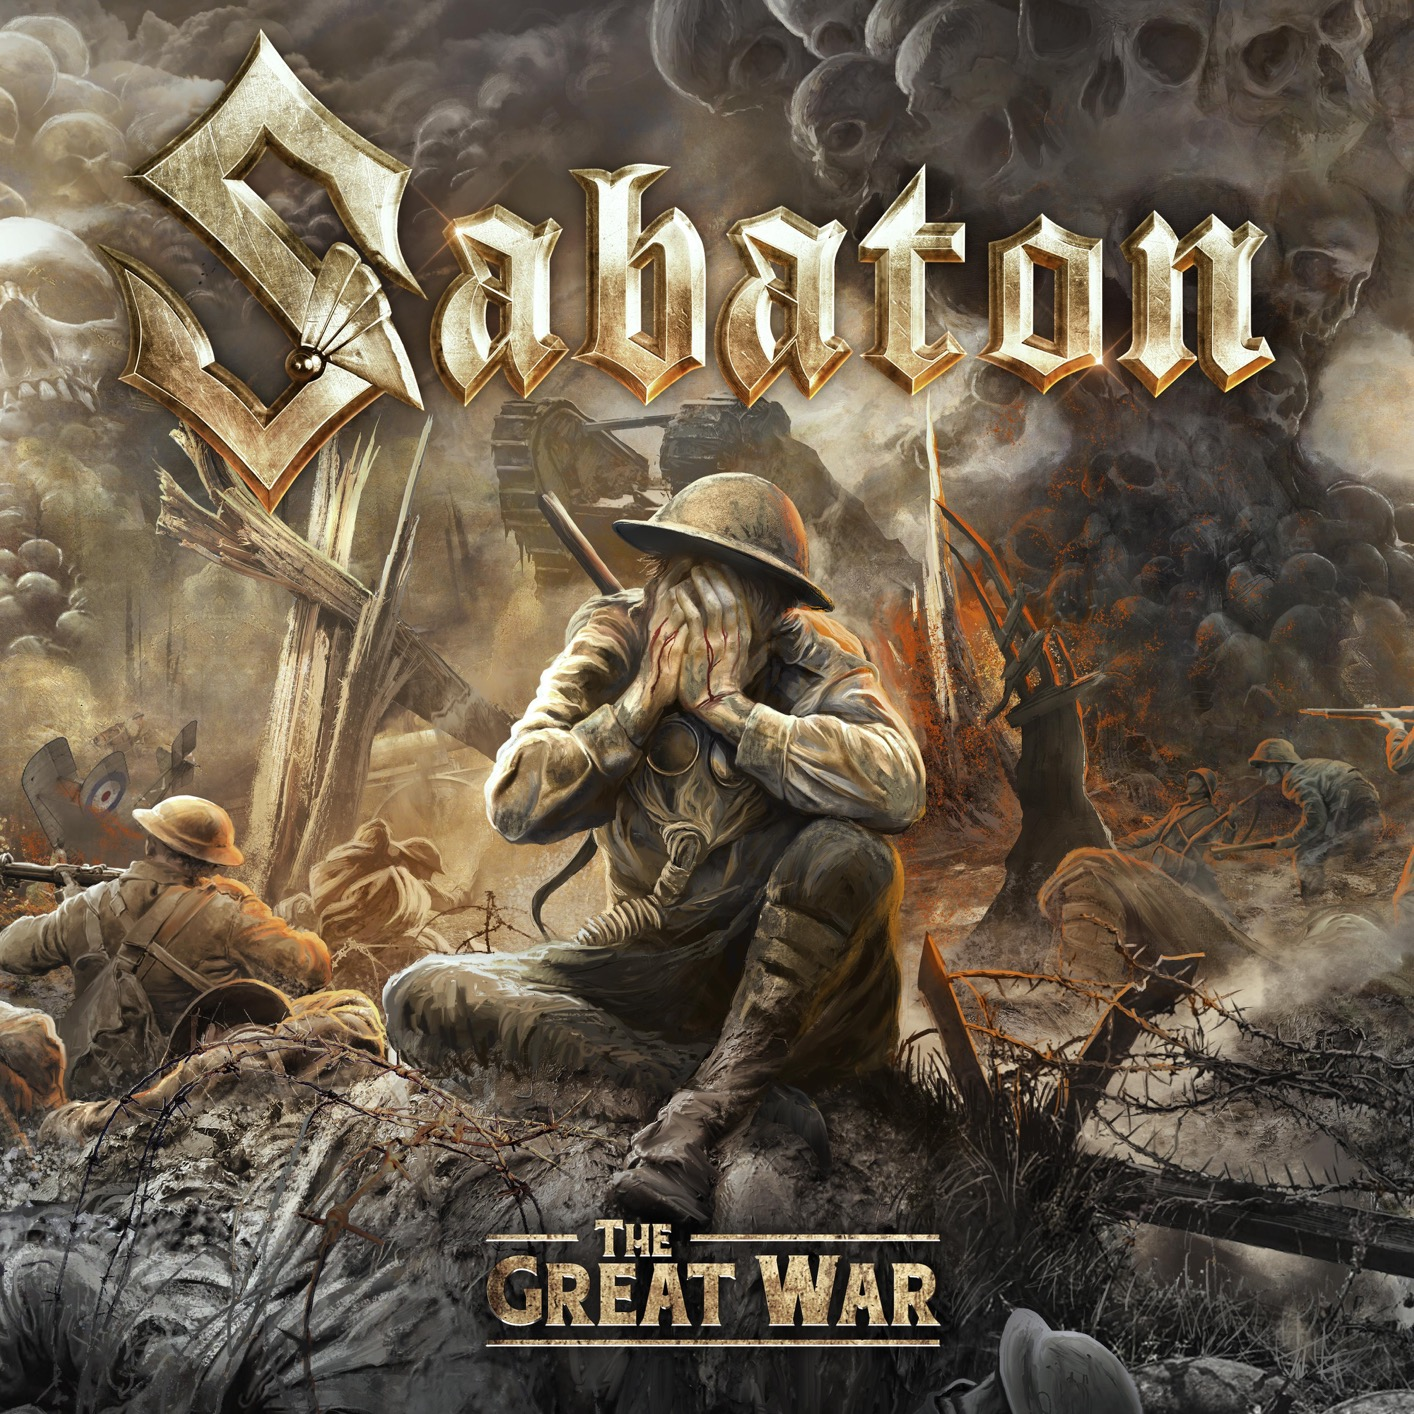 [TR24][OF] Sabaton - The Great War (The Soundtrack To The Great War) - 2019 (Power Metal)